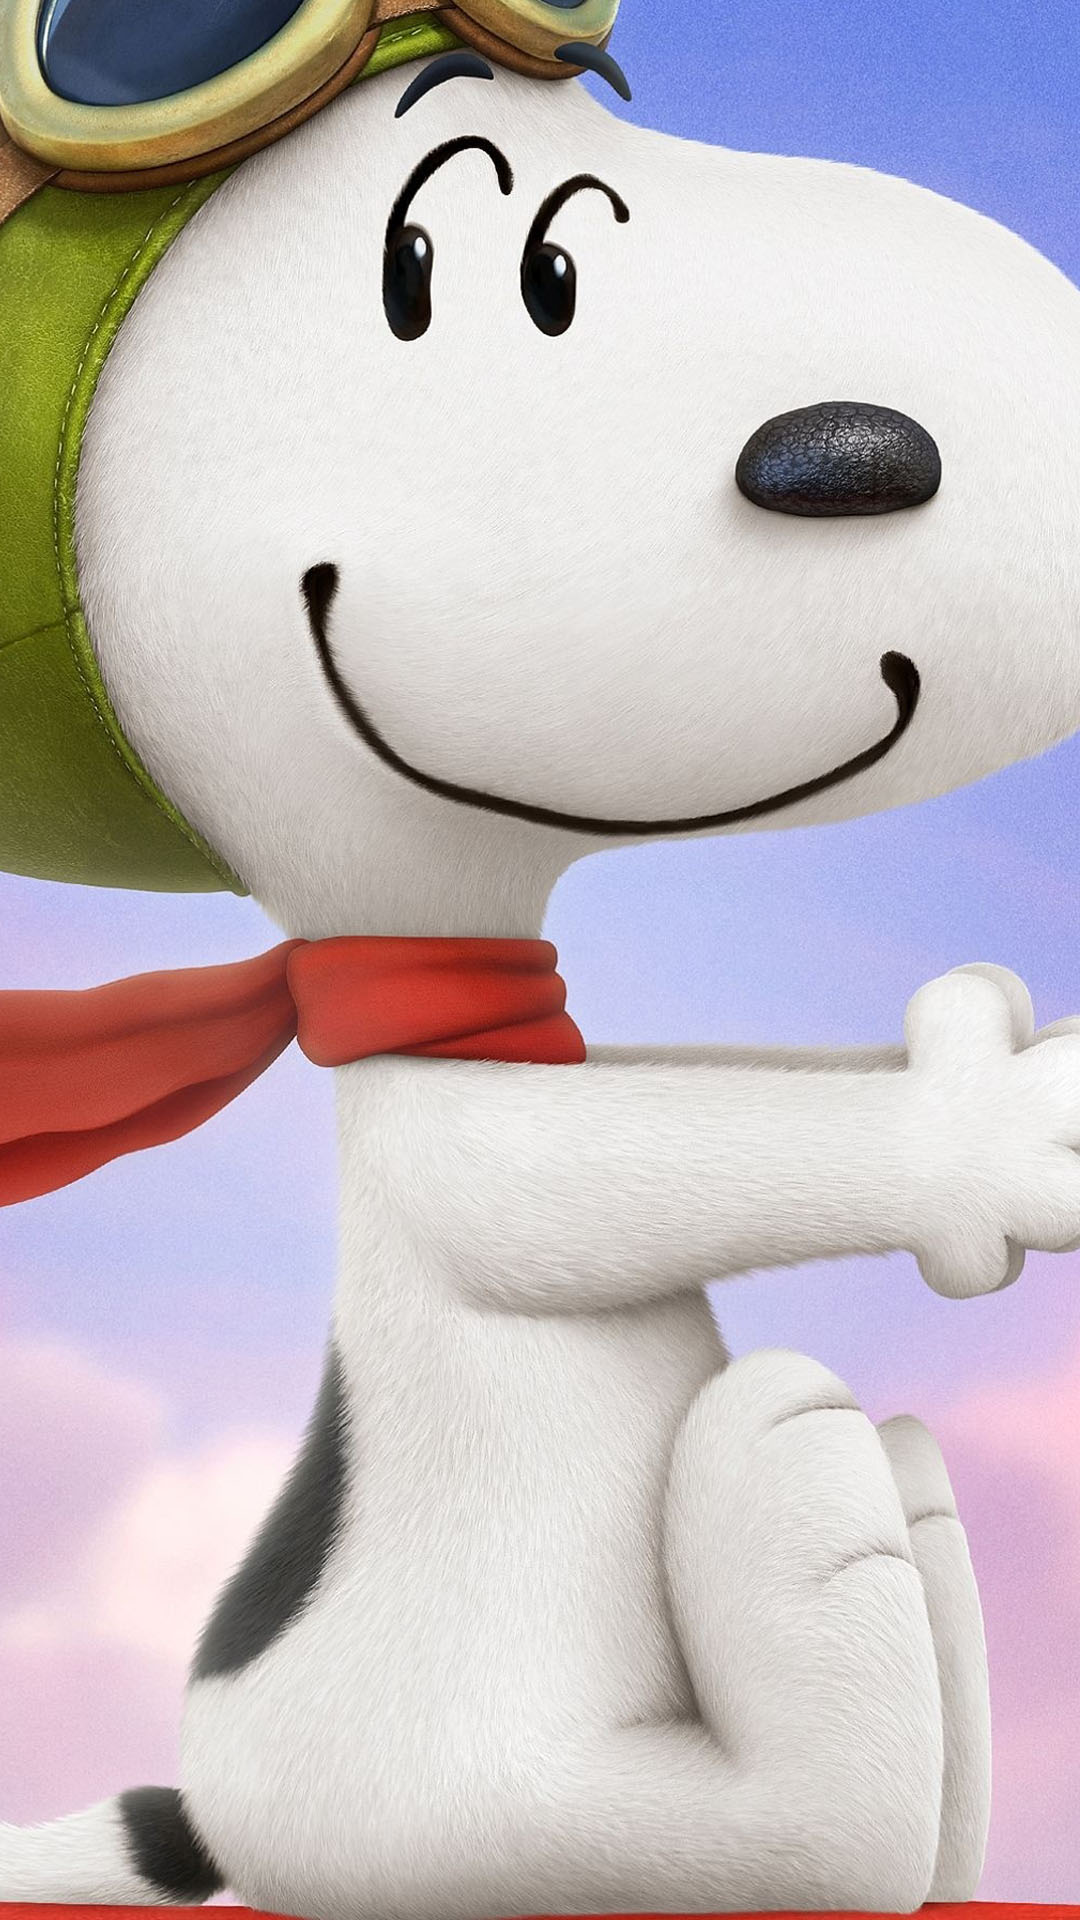 peanuts snoopy iphone 6 / 6 plus and iphone 5/4 wallpapers